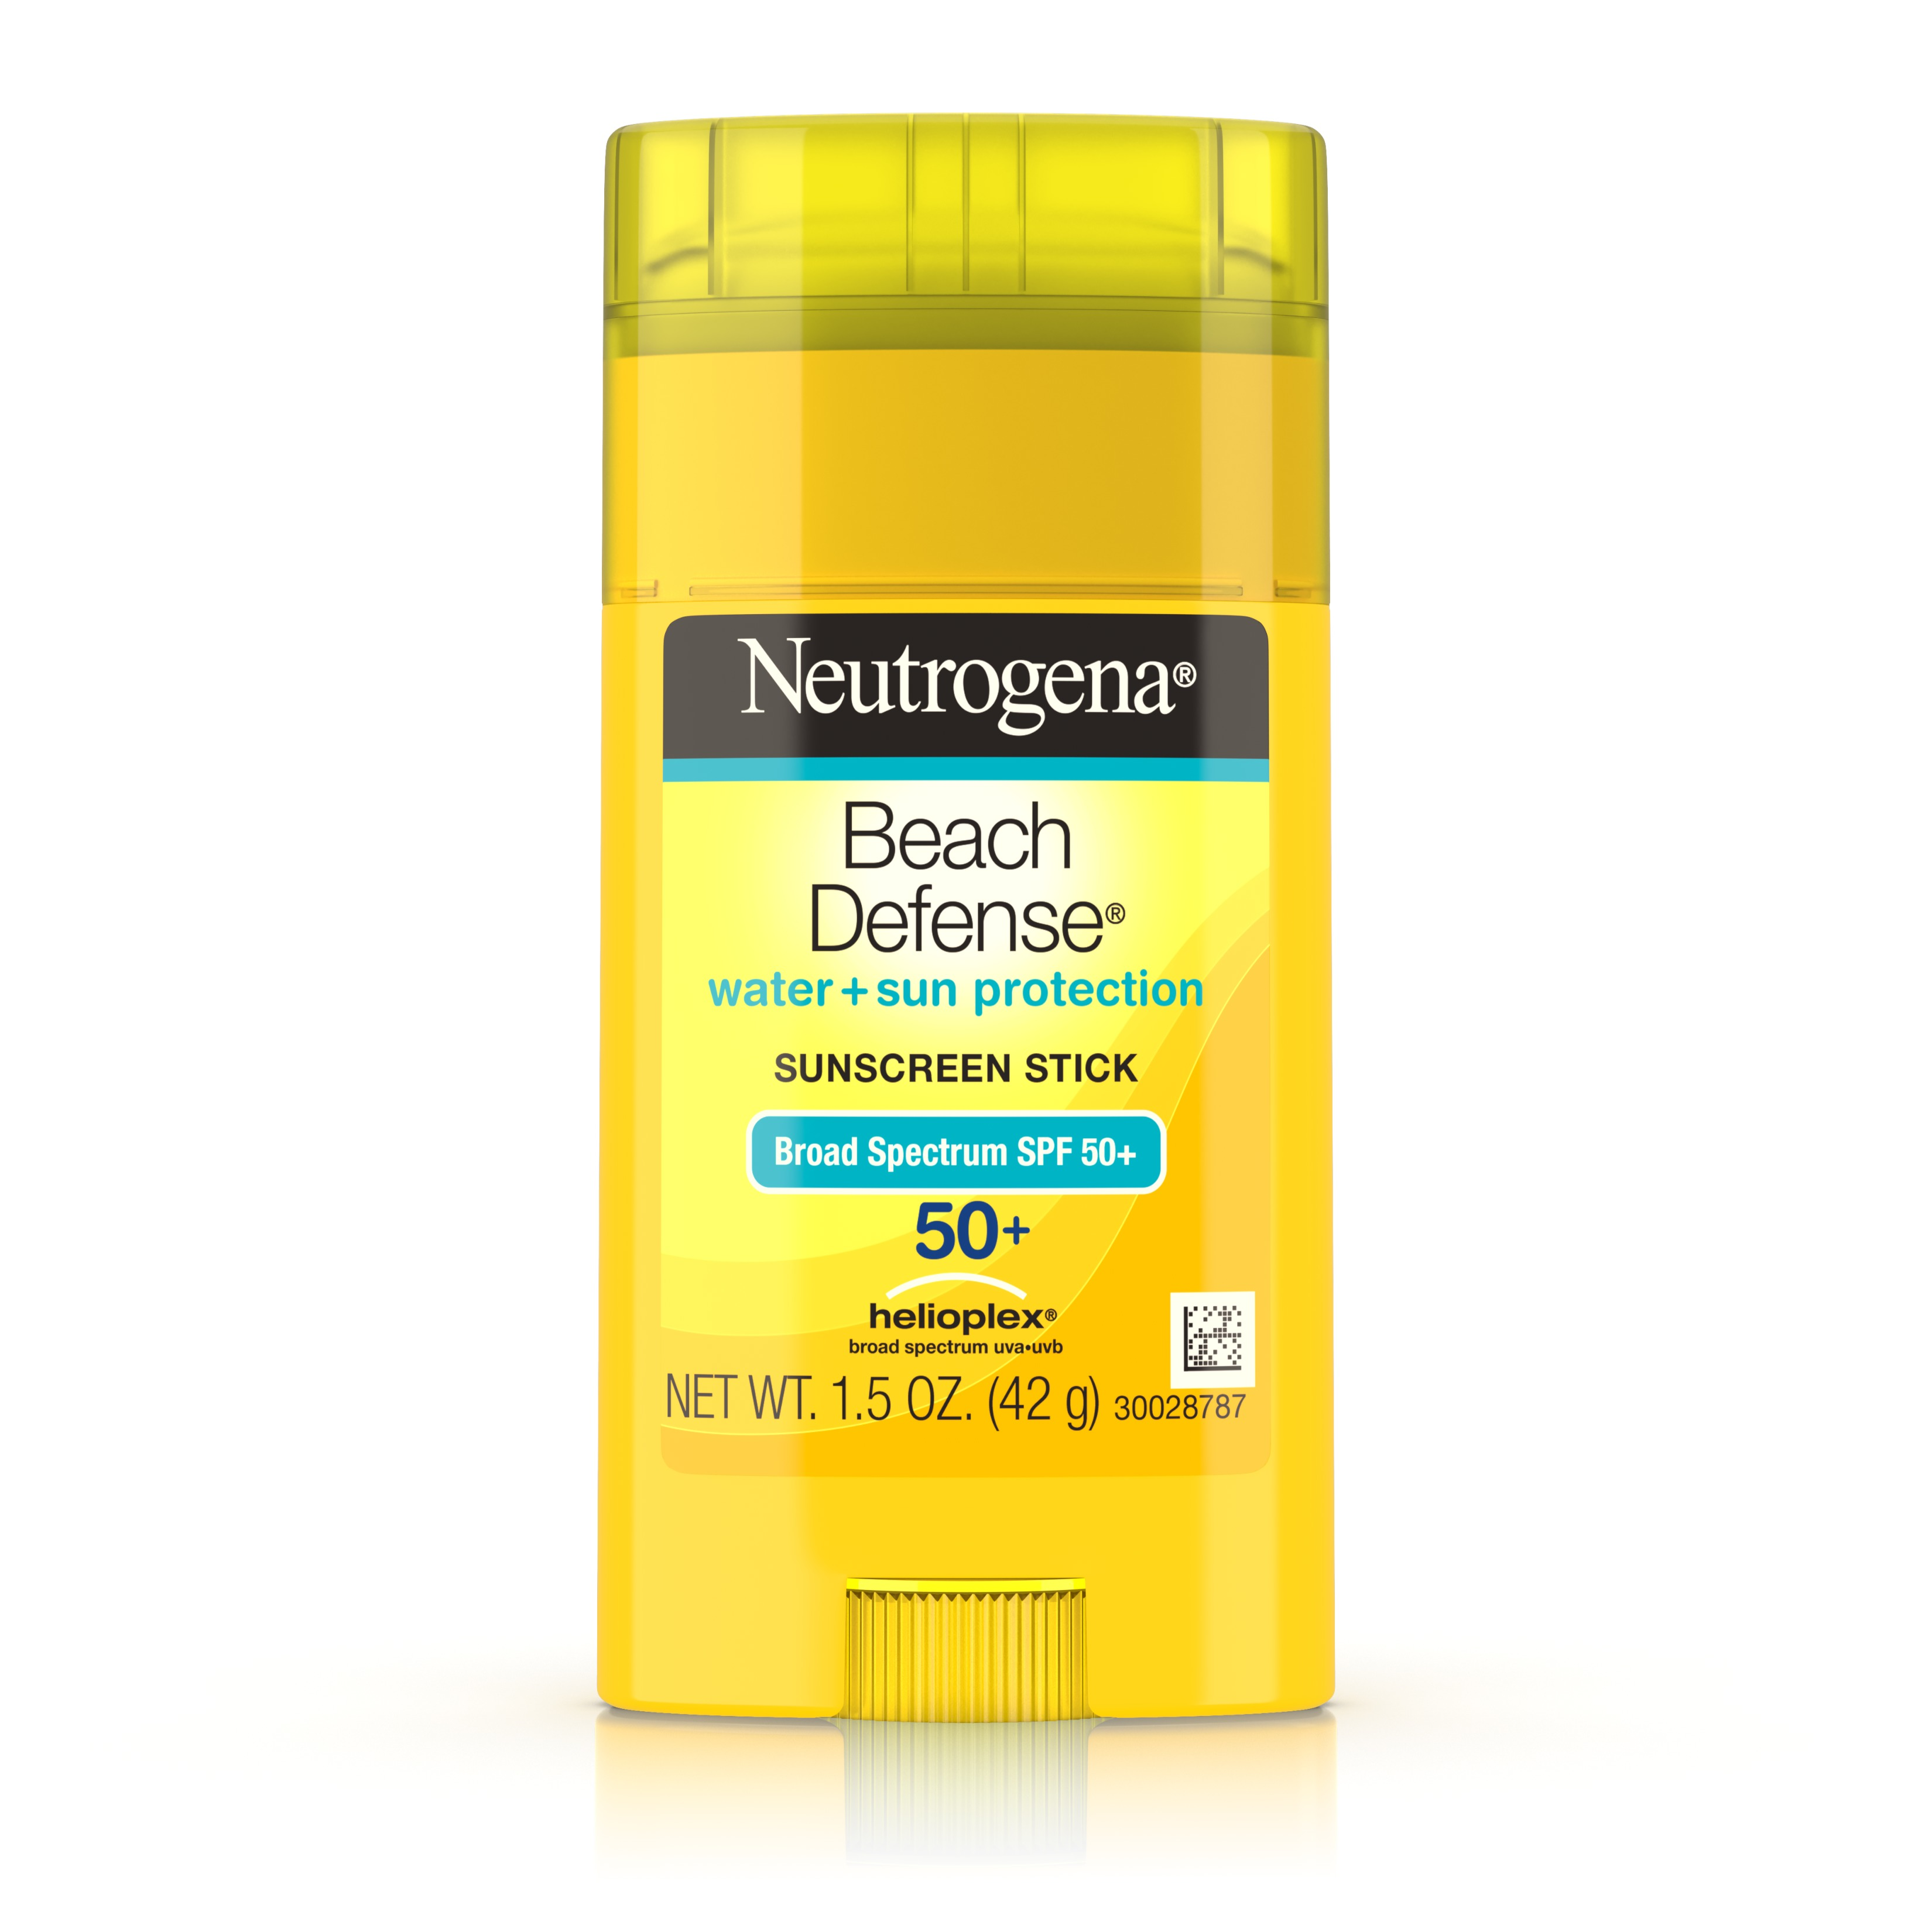 Neutrogena Beach Defense Oil-Free Sunscreen Stick SPF 50+, 1.5 oz